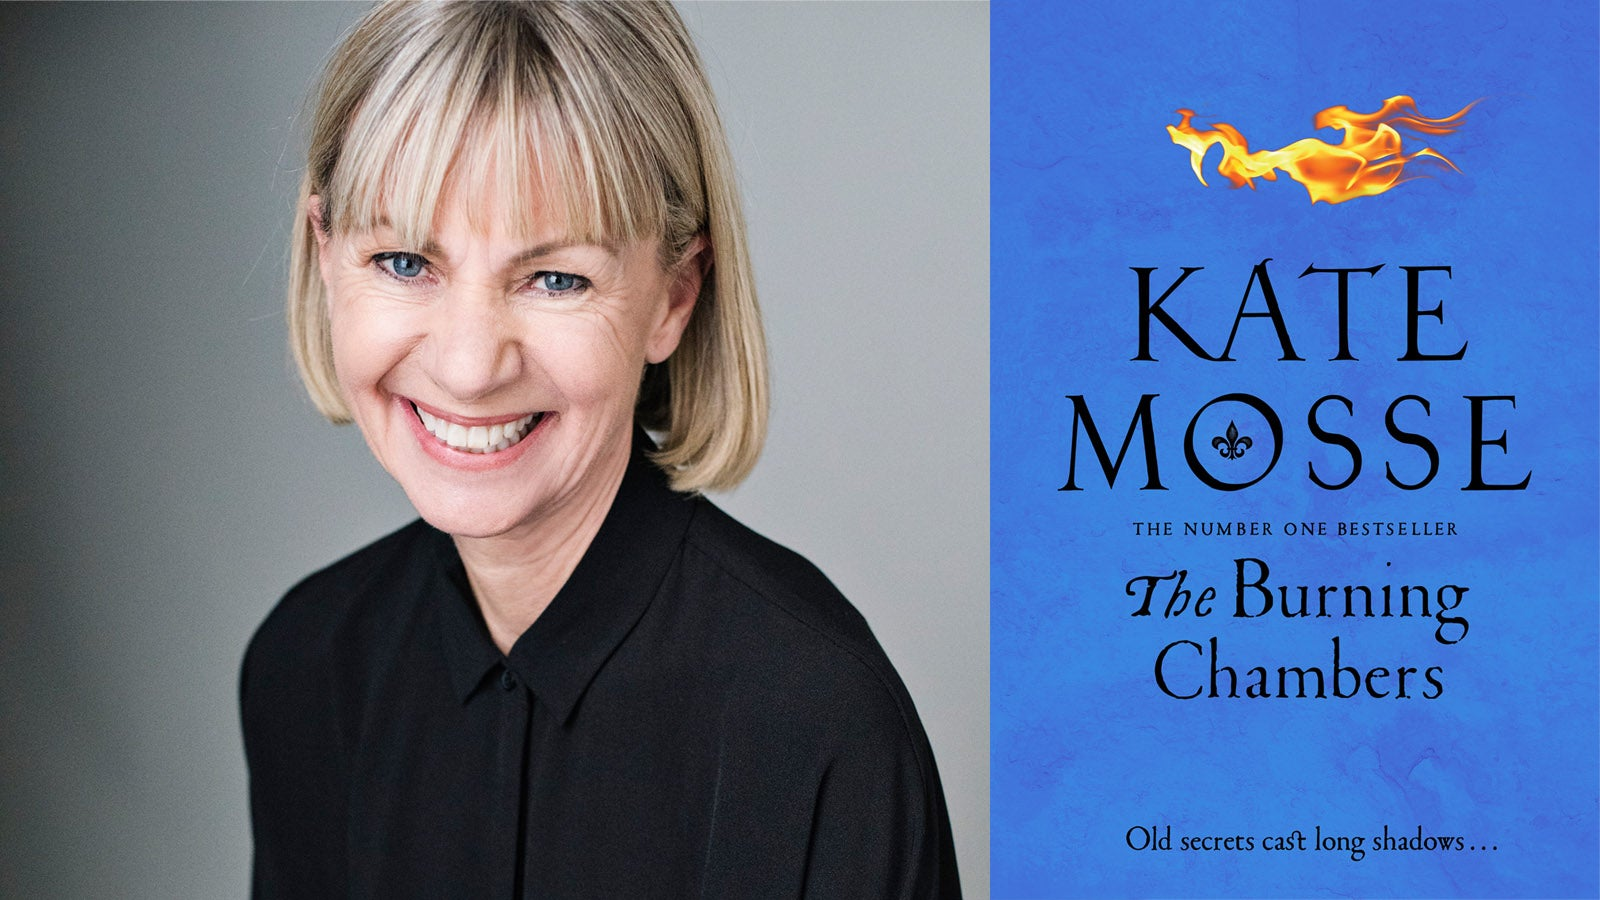 The Burning Chambers by Kate Mosse book cover and author photo